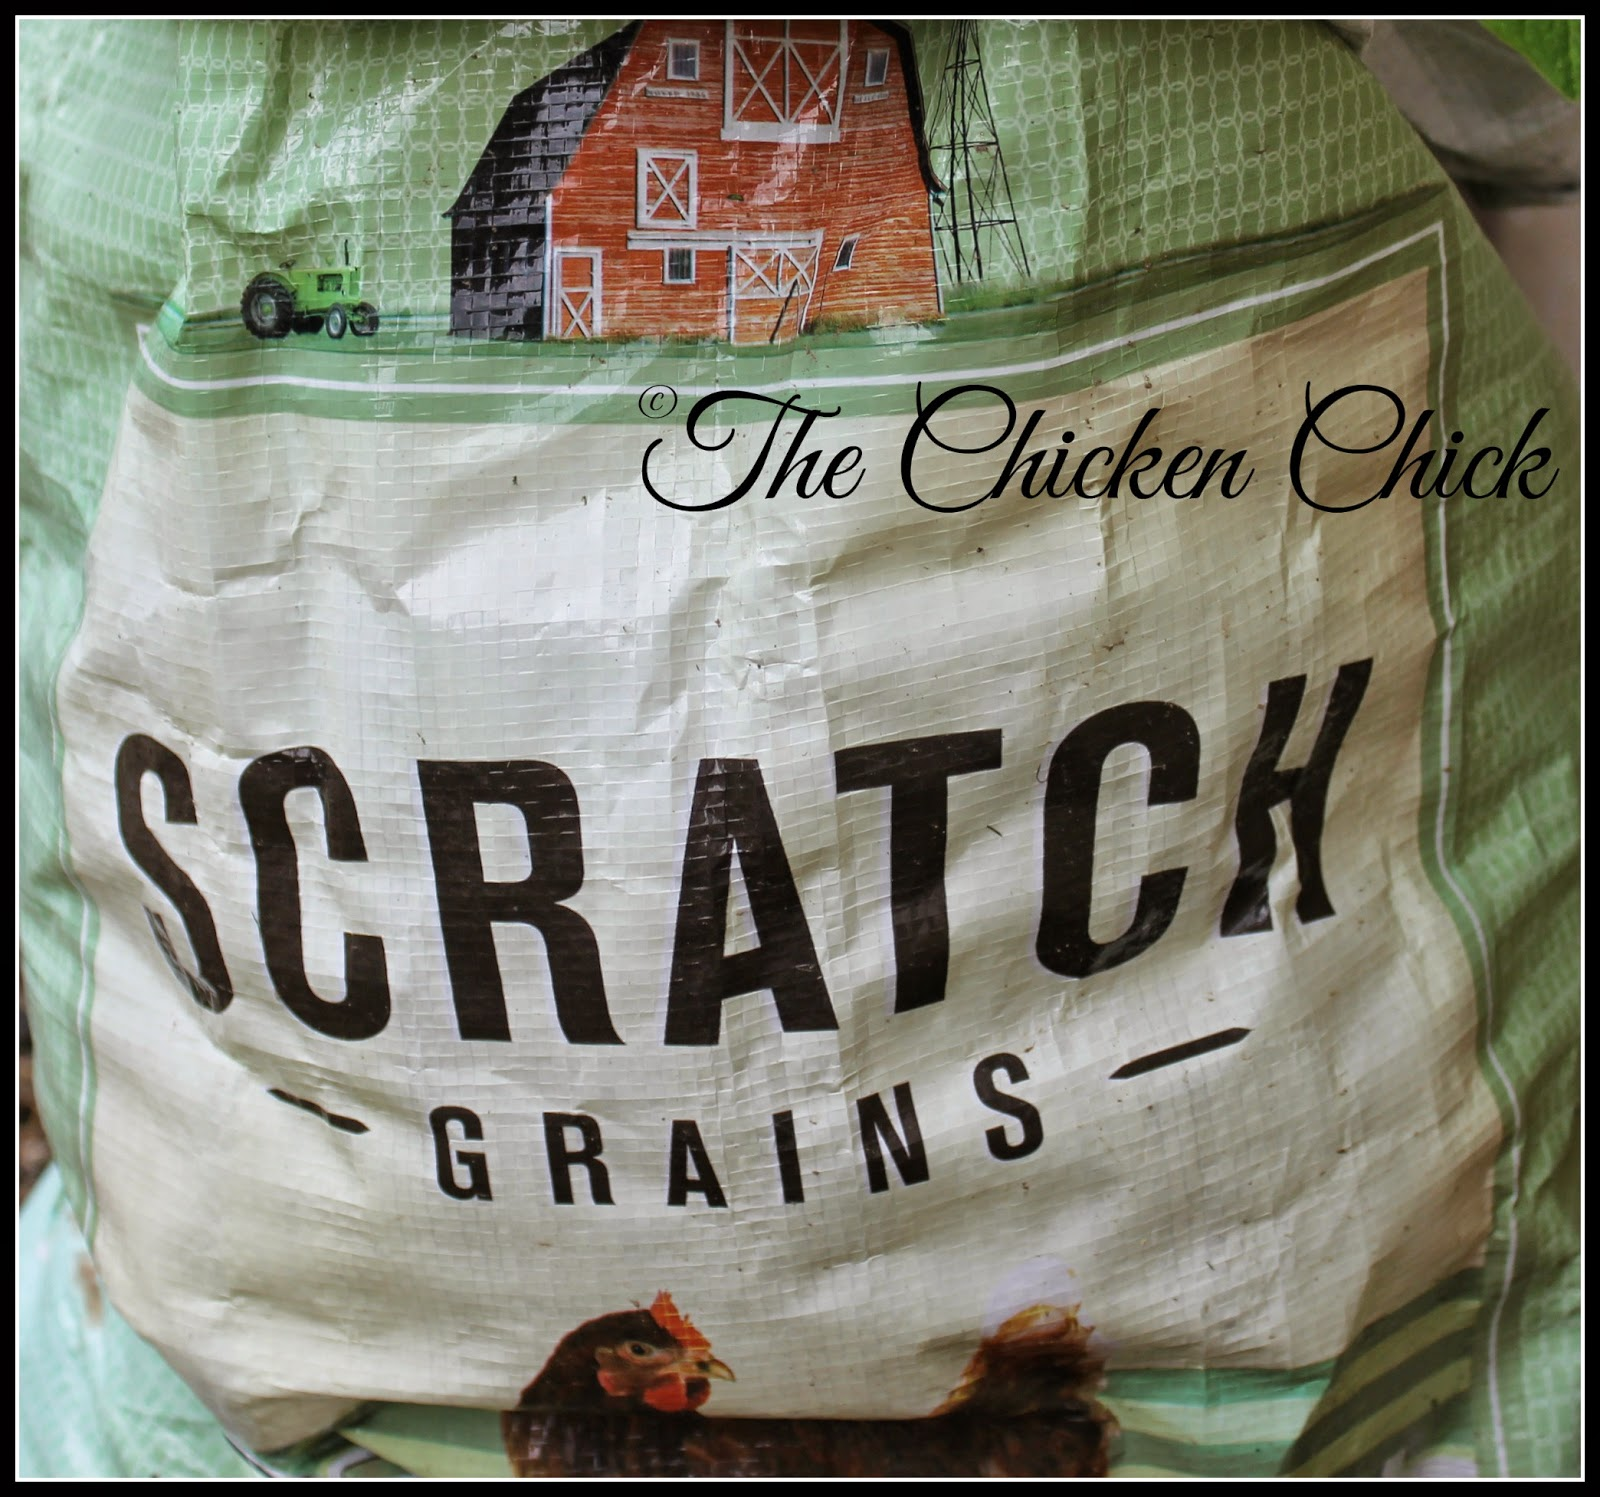 Chicken scratch is NOT chicken feed. The contents of scratch varies by country and region, but it consists primarily of cracked corn and any number of other grains. It's a source of energy (think: carbs) but is not a good source of vitamins, minerals or protein.